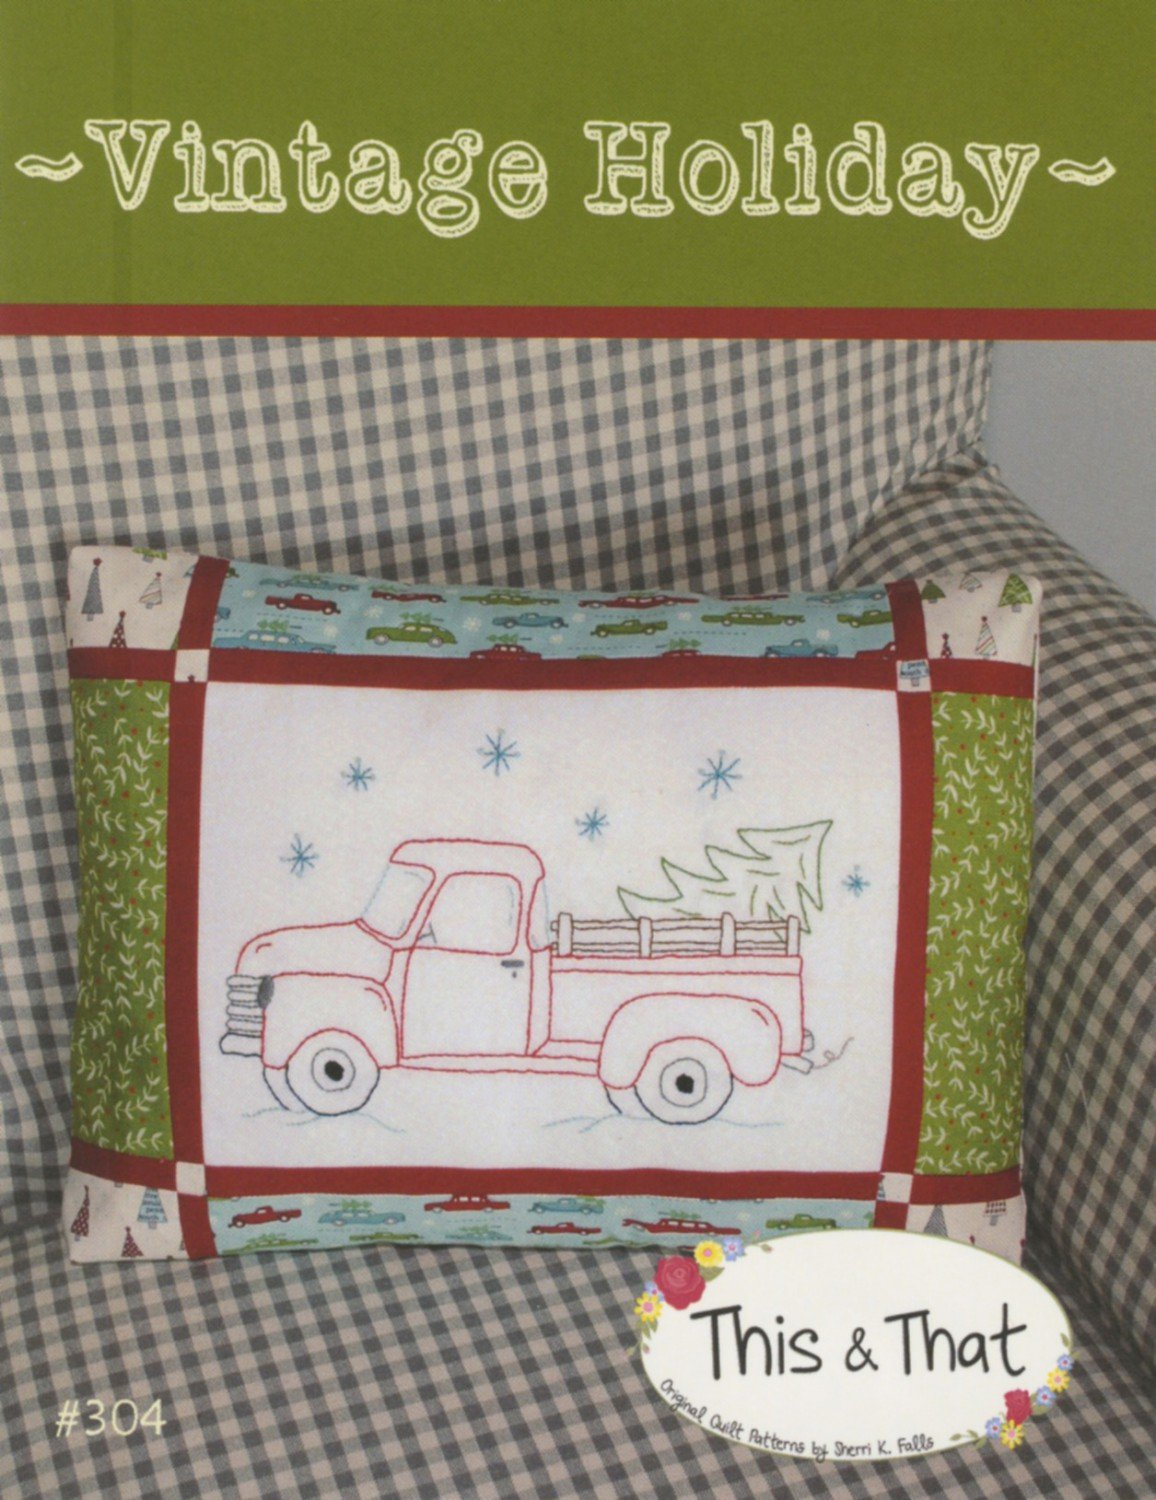 Vintage Holiday--This & That